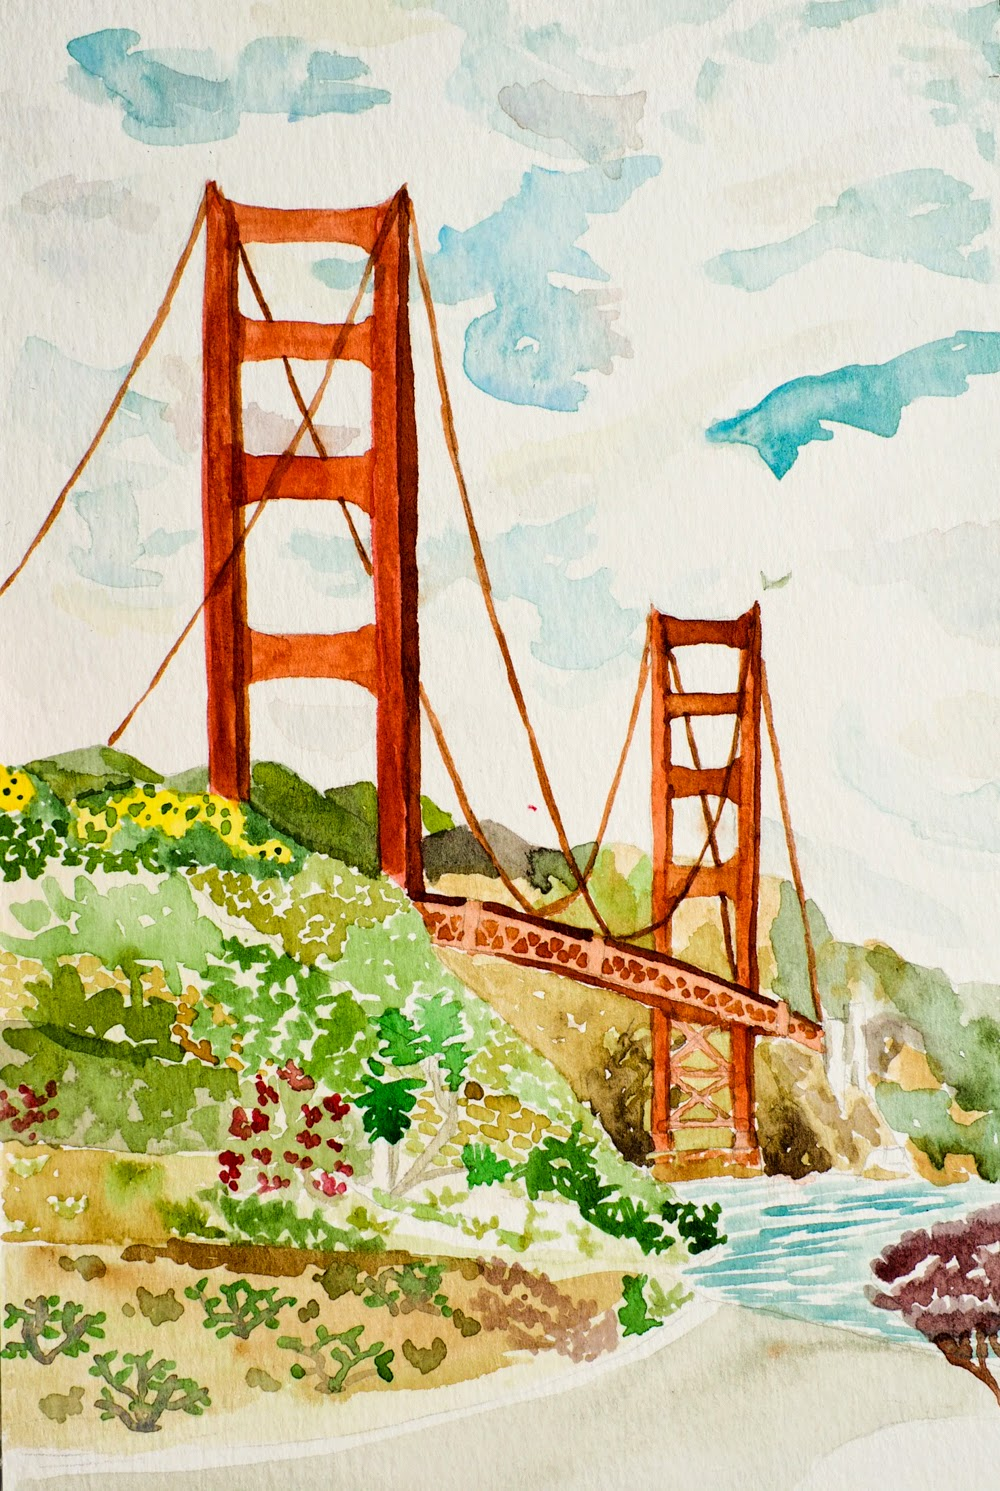 The Art Of A Roy Greenfeld Golden Gate Bridge Ii Diagram When I First Sat Down Thought Was Going To Paint For Half An Hour Then Power Walk Across And Back That Didnt Happen